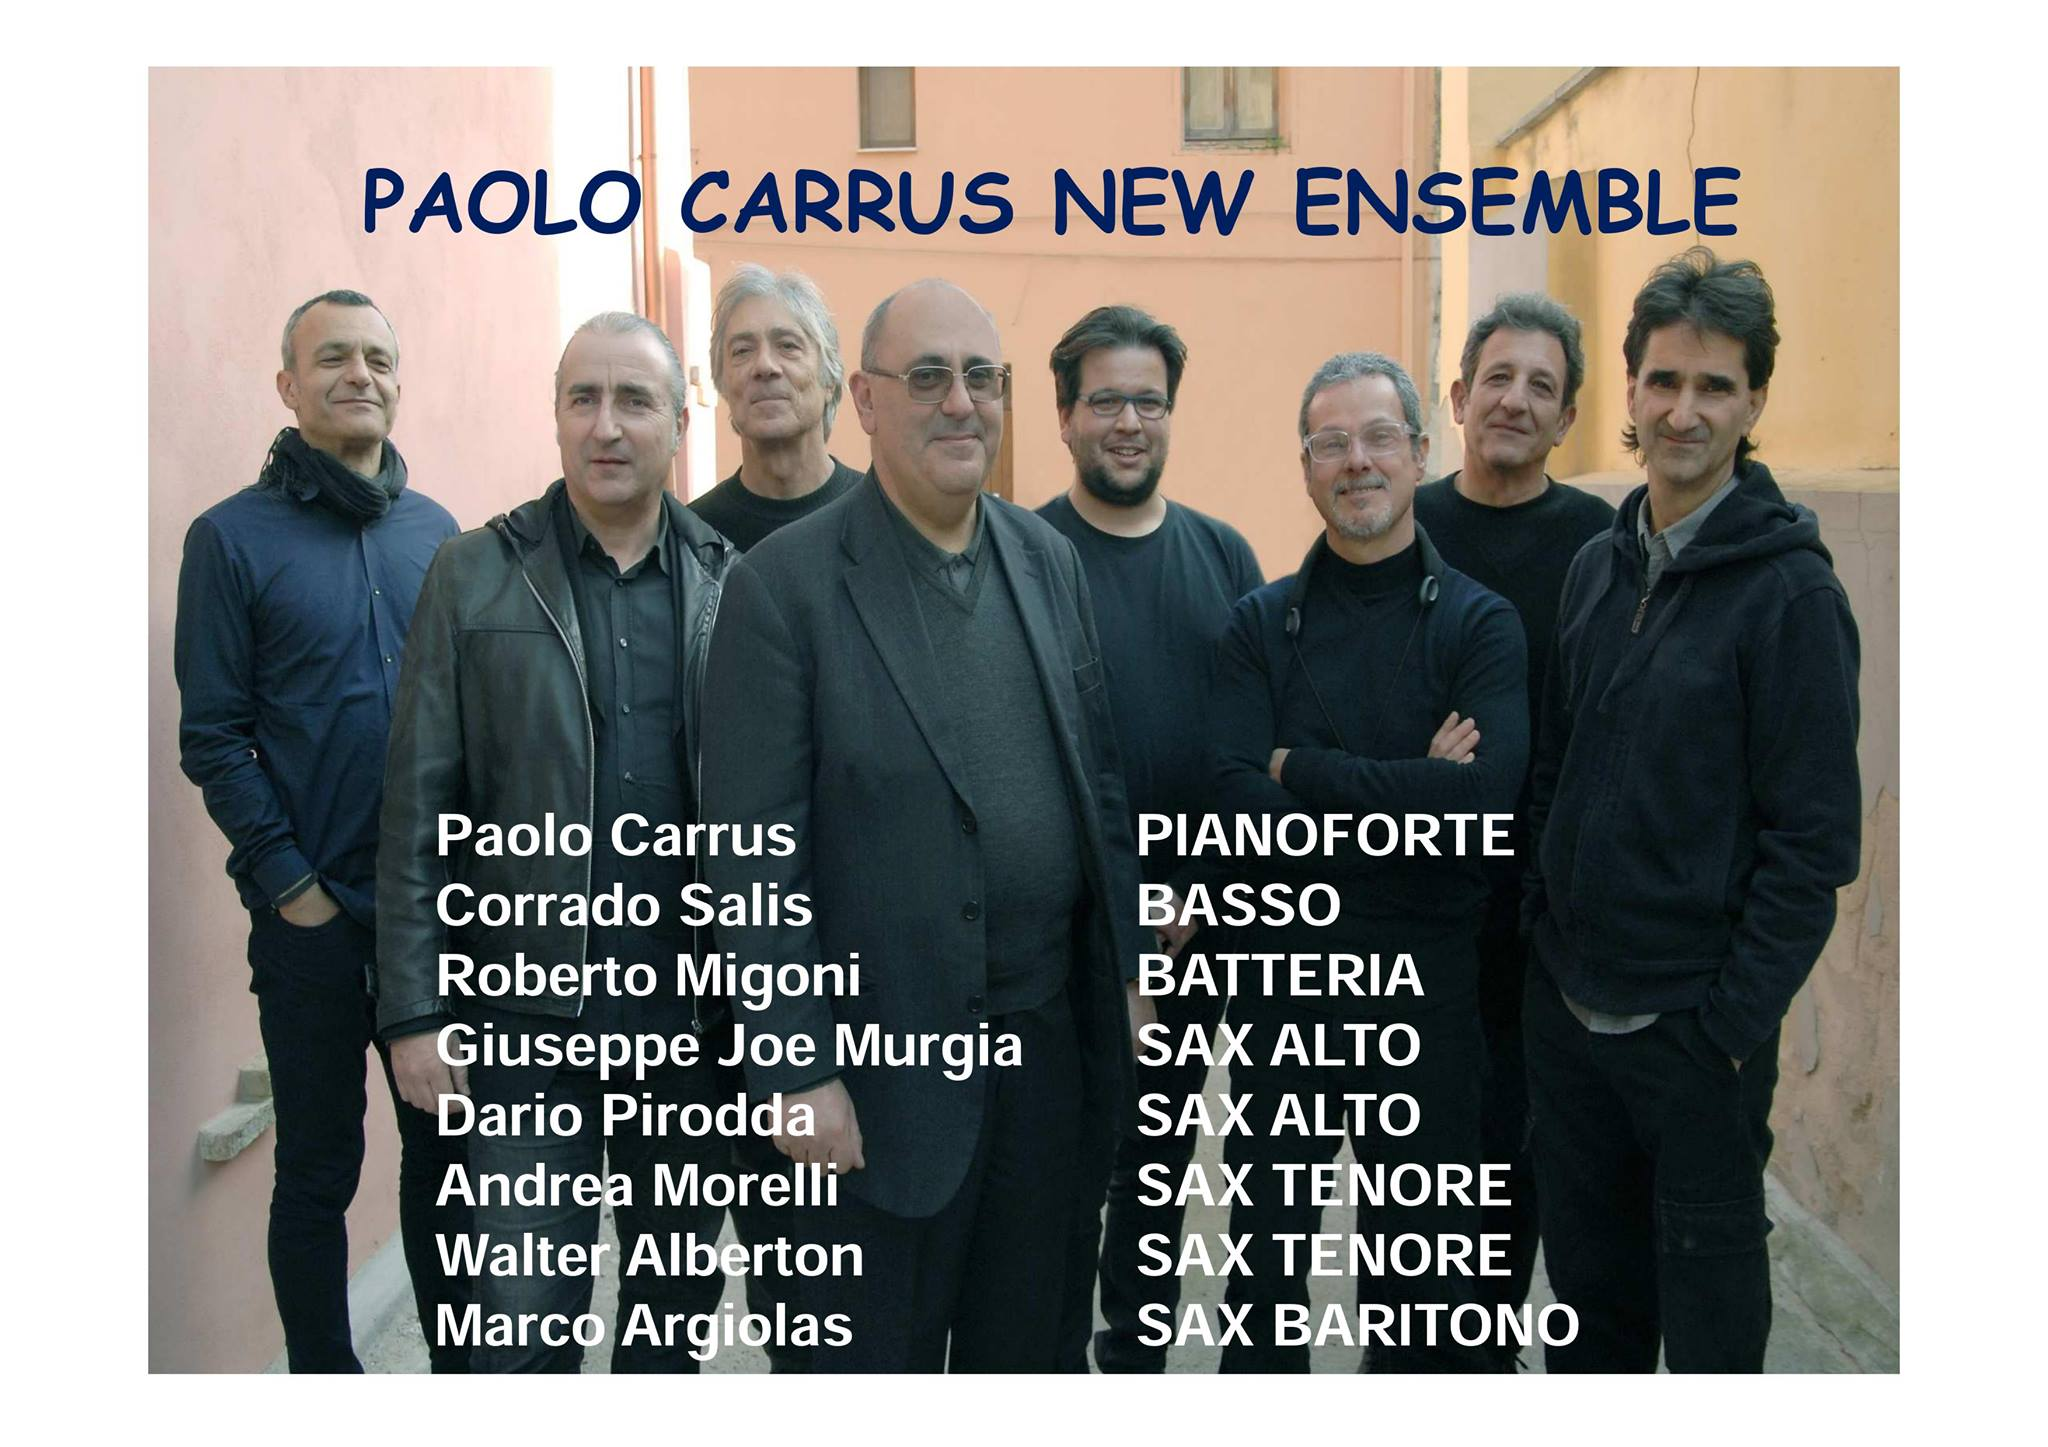 Paolo Carrus New Ensemble